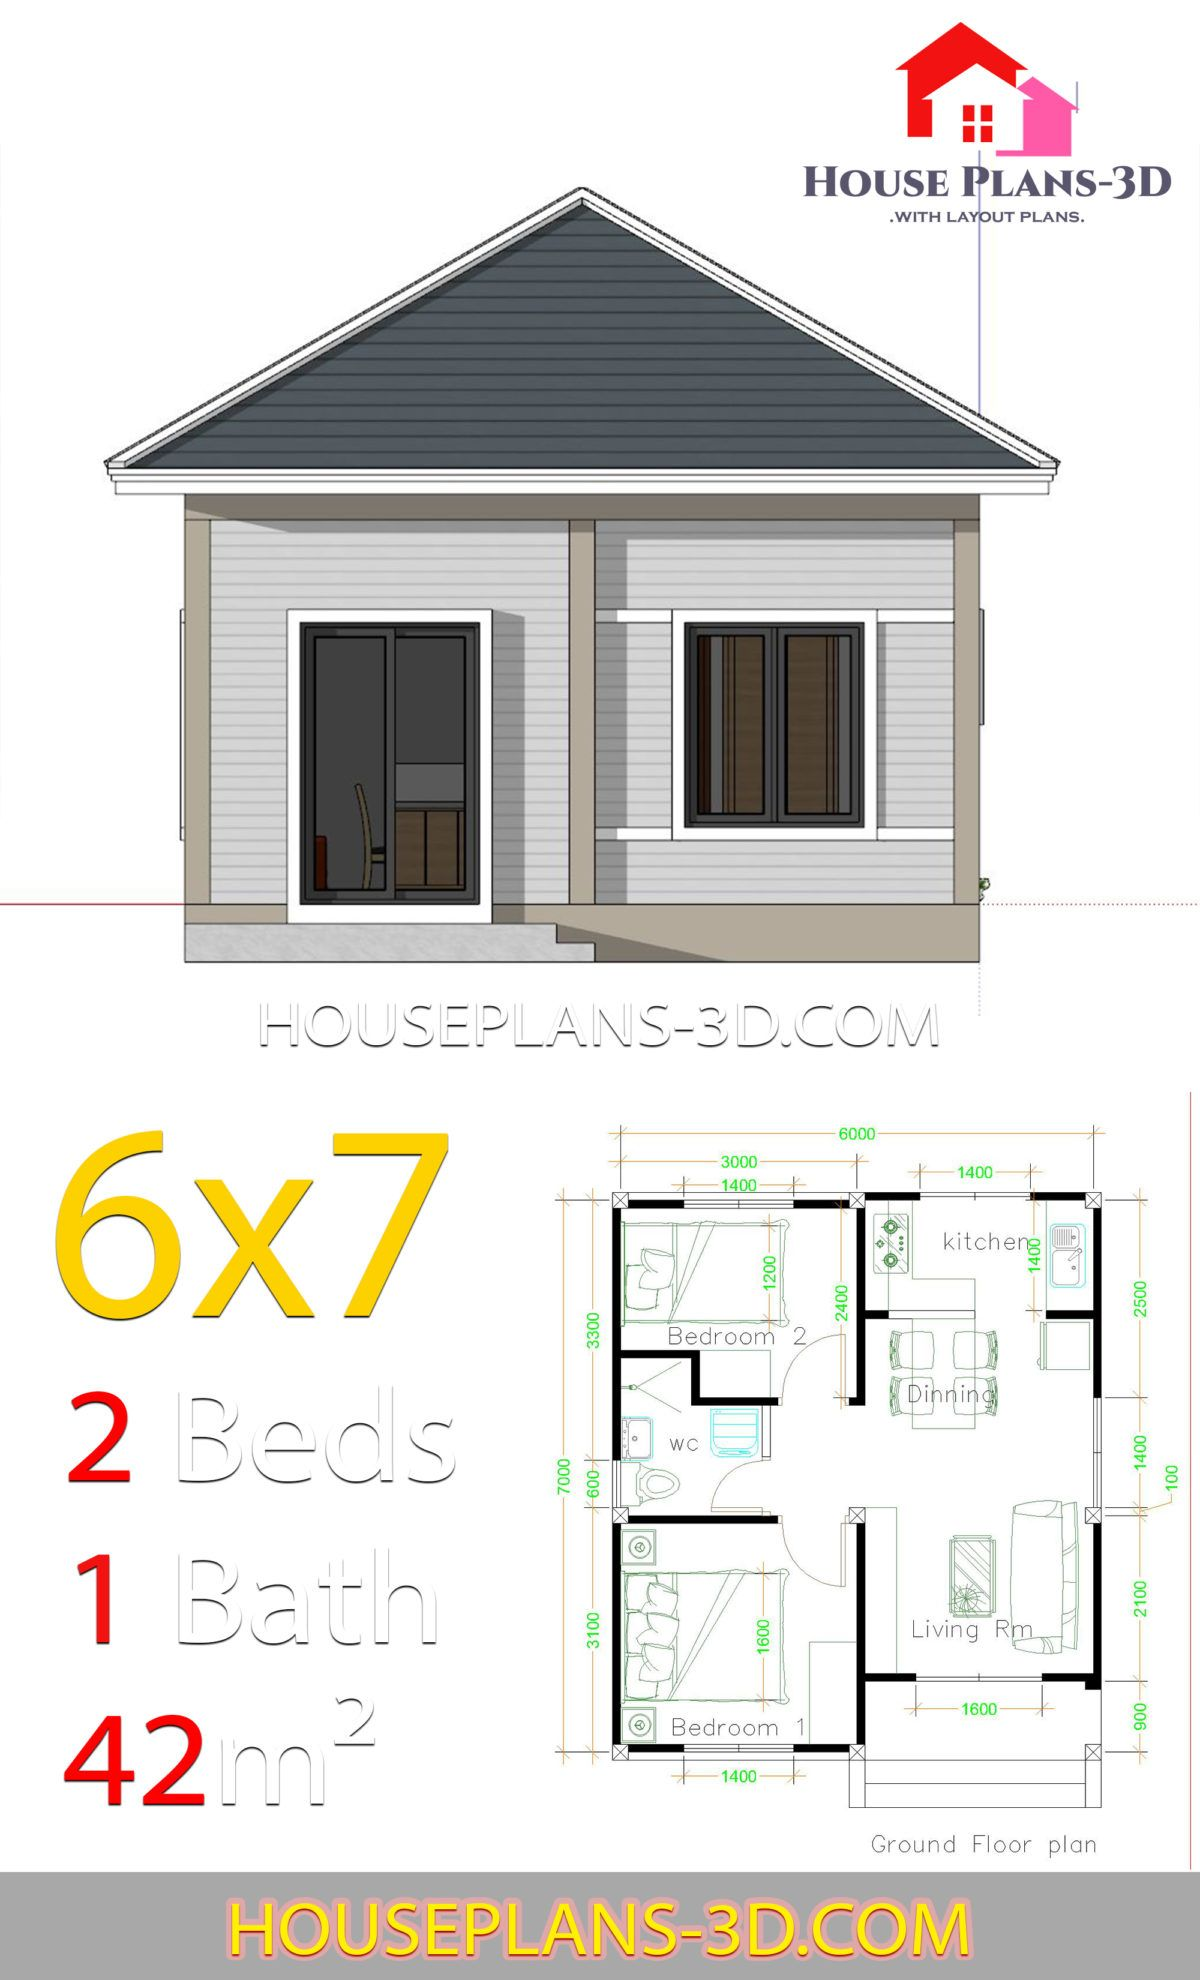 Simple House Plans 6x7 With 2 Bedrooms Hip Roof House Plans 3d In 2020 House Construction Plan Small House Design Plans House Plans